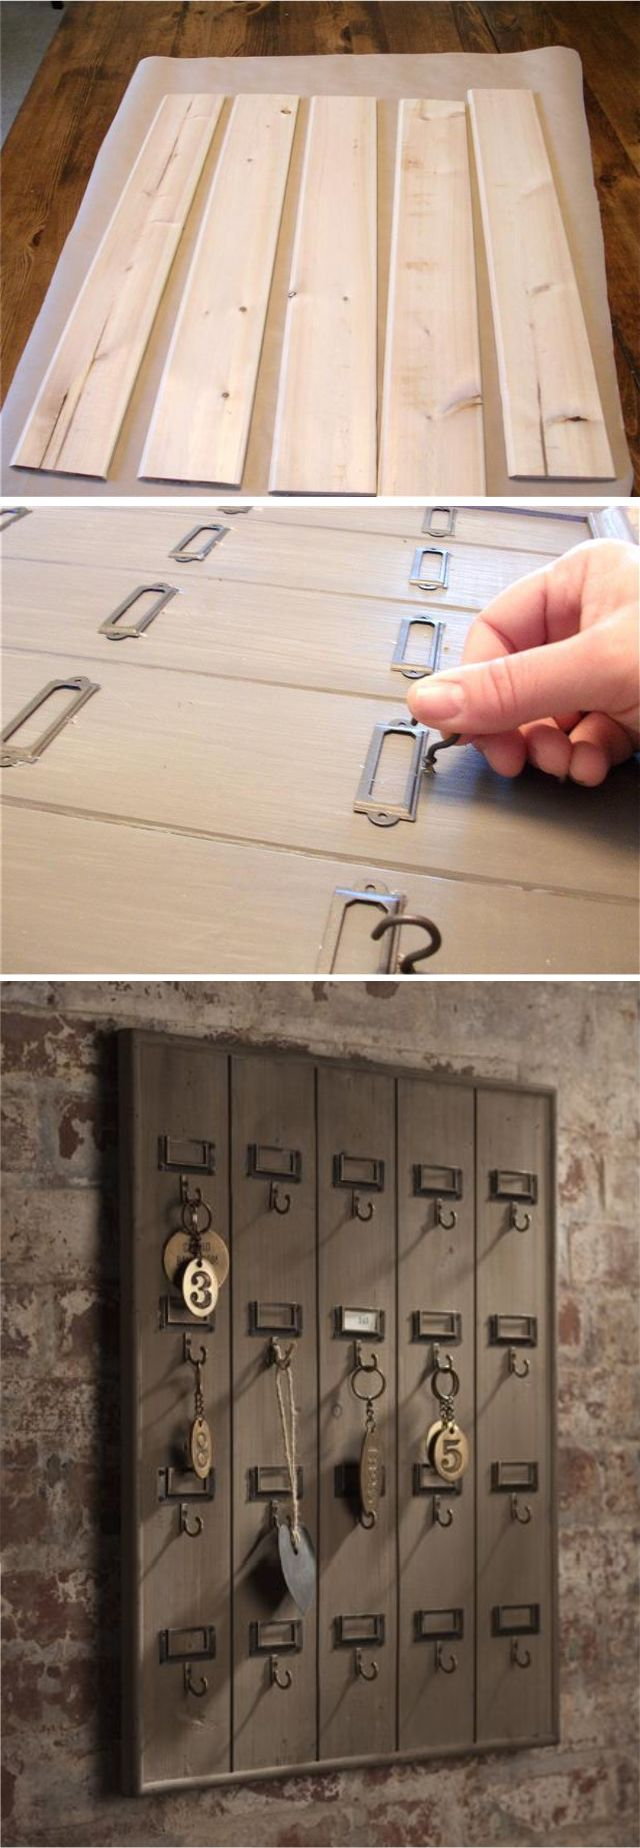 DIY hotel-inspired key holder tutorial.